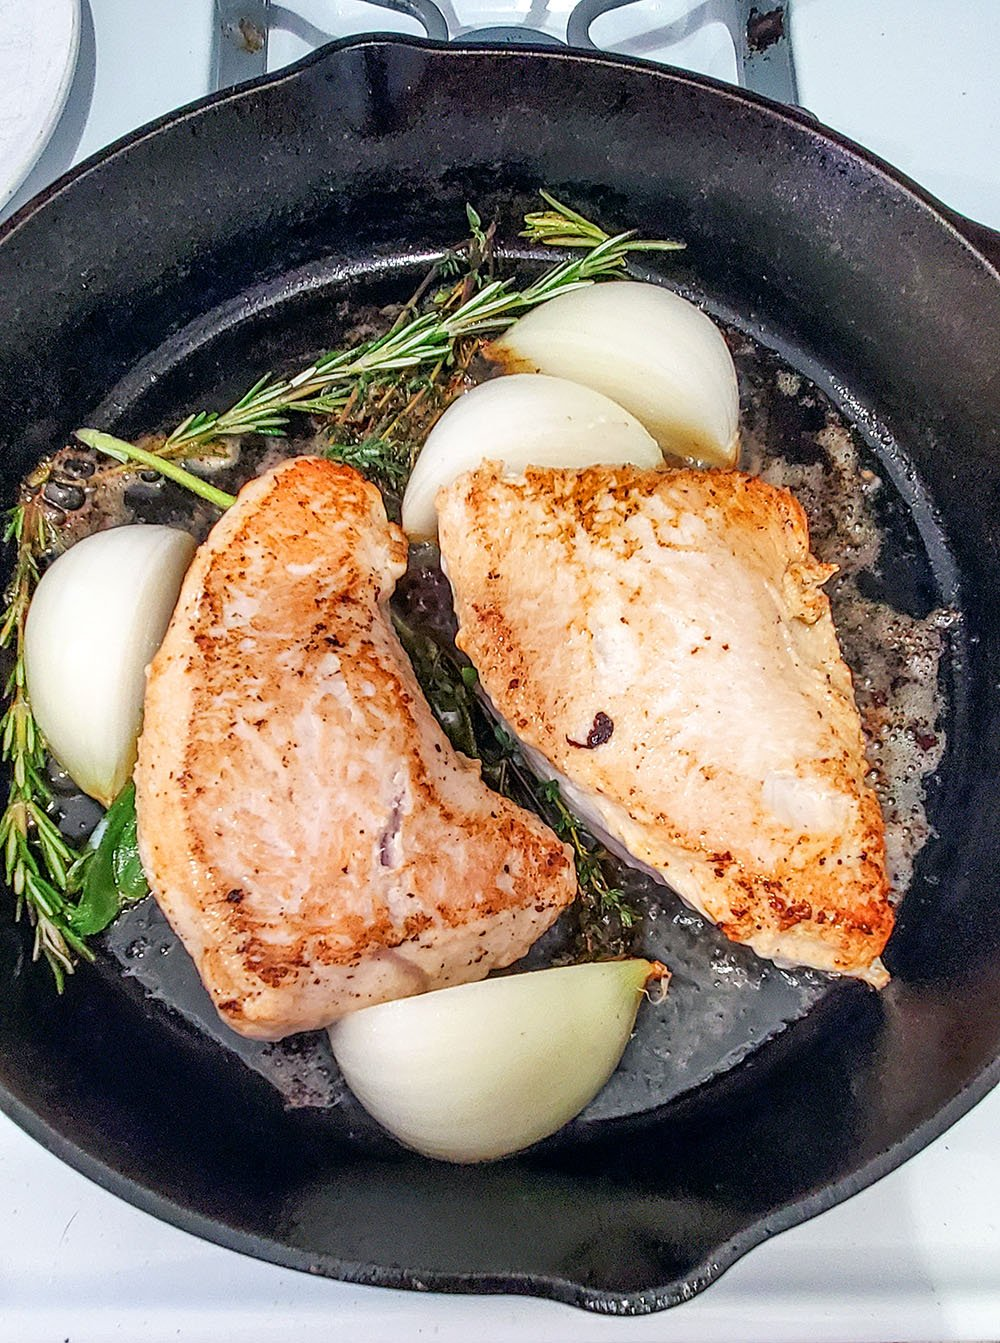 Turkey tenderloins sauteed on the stove and baked in the oven.